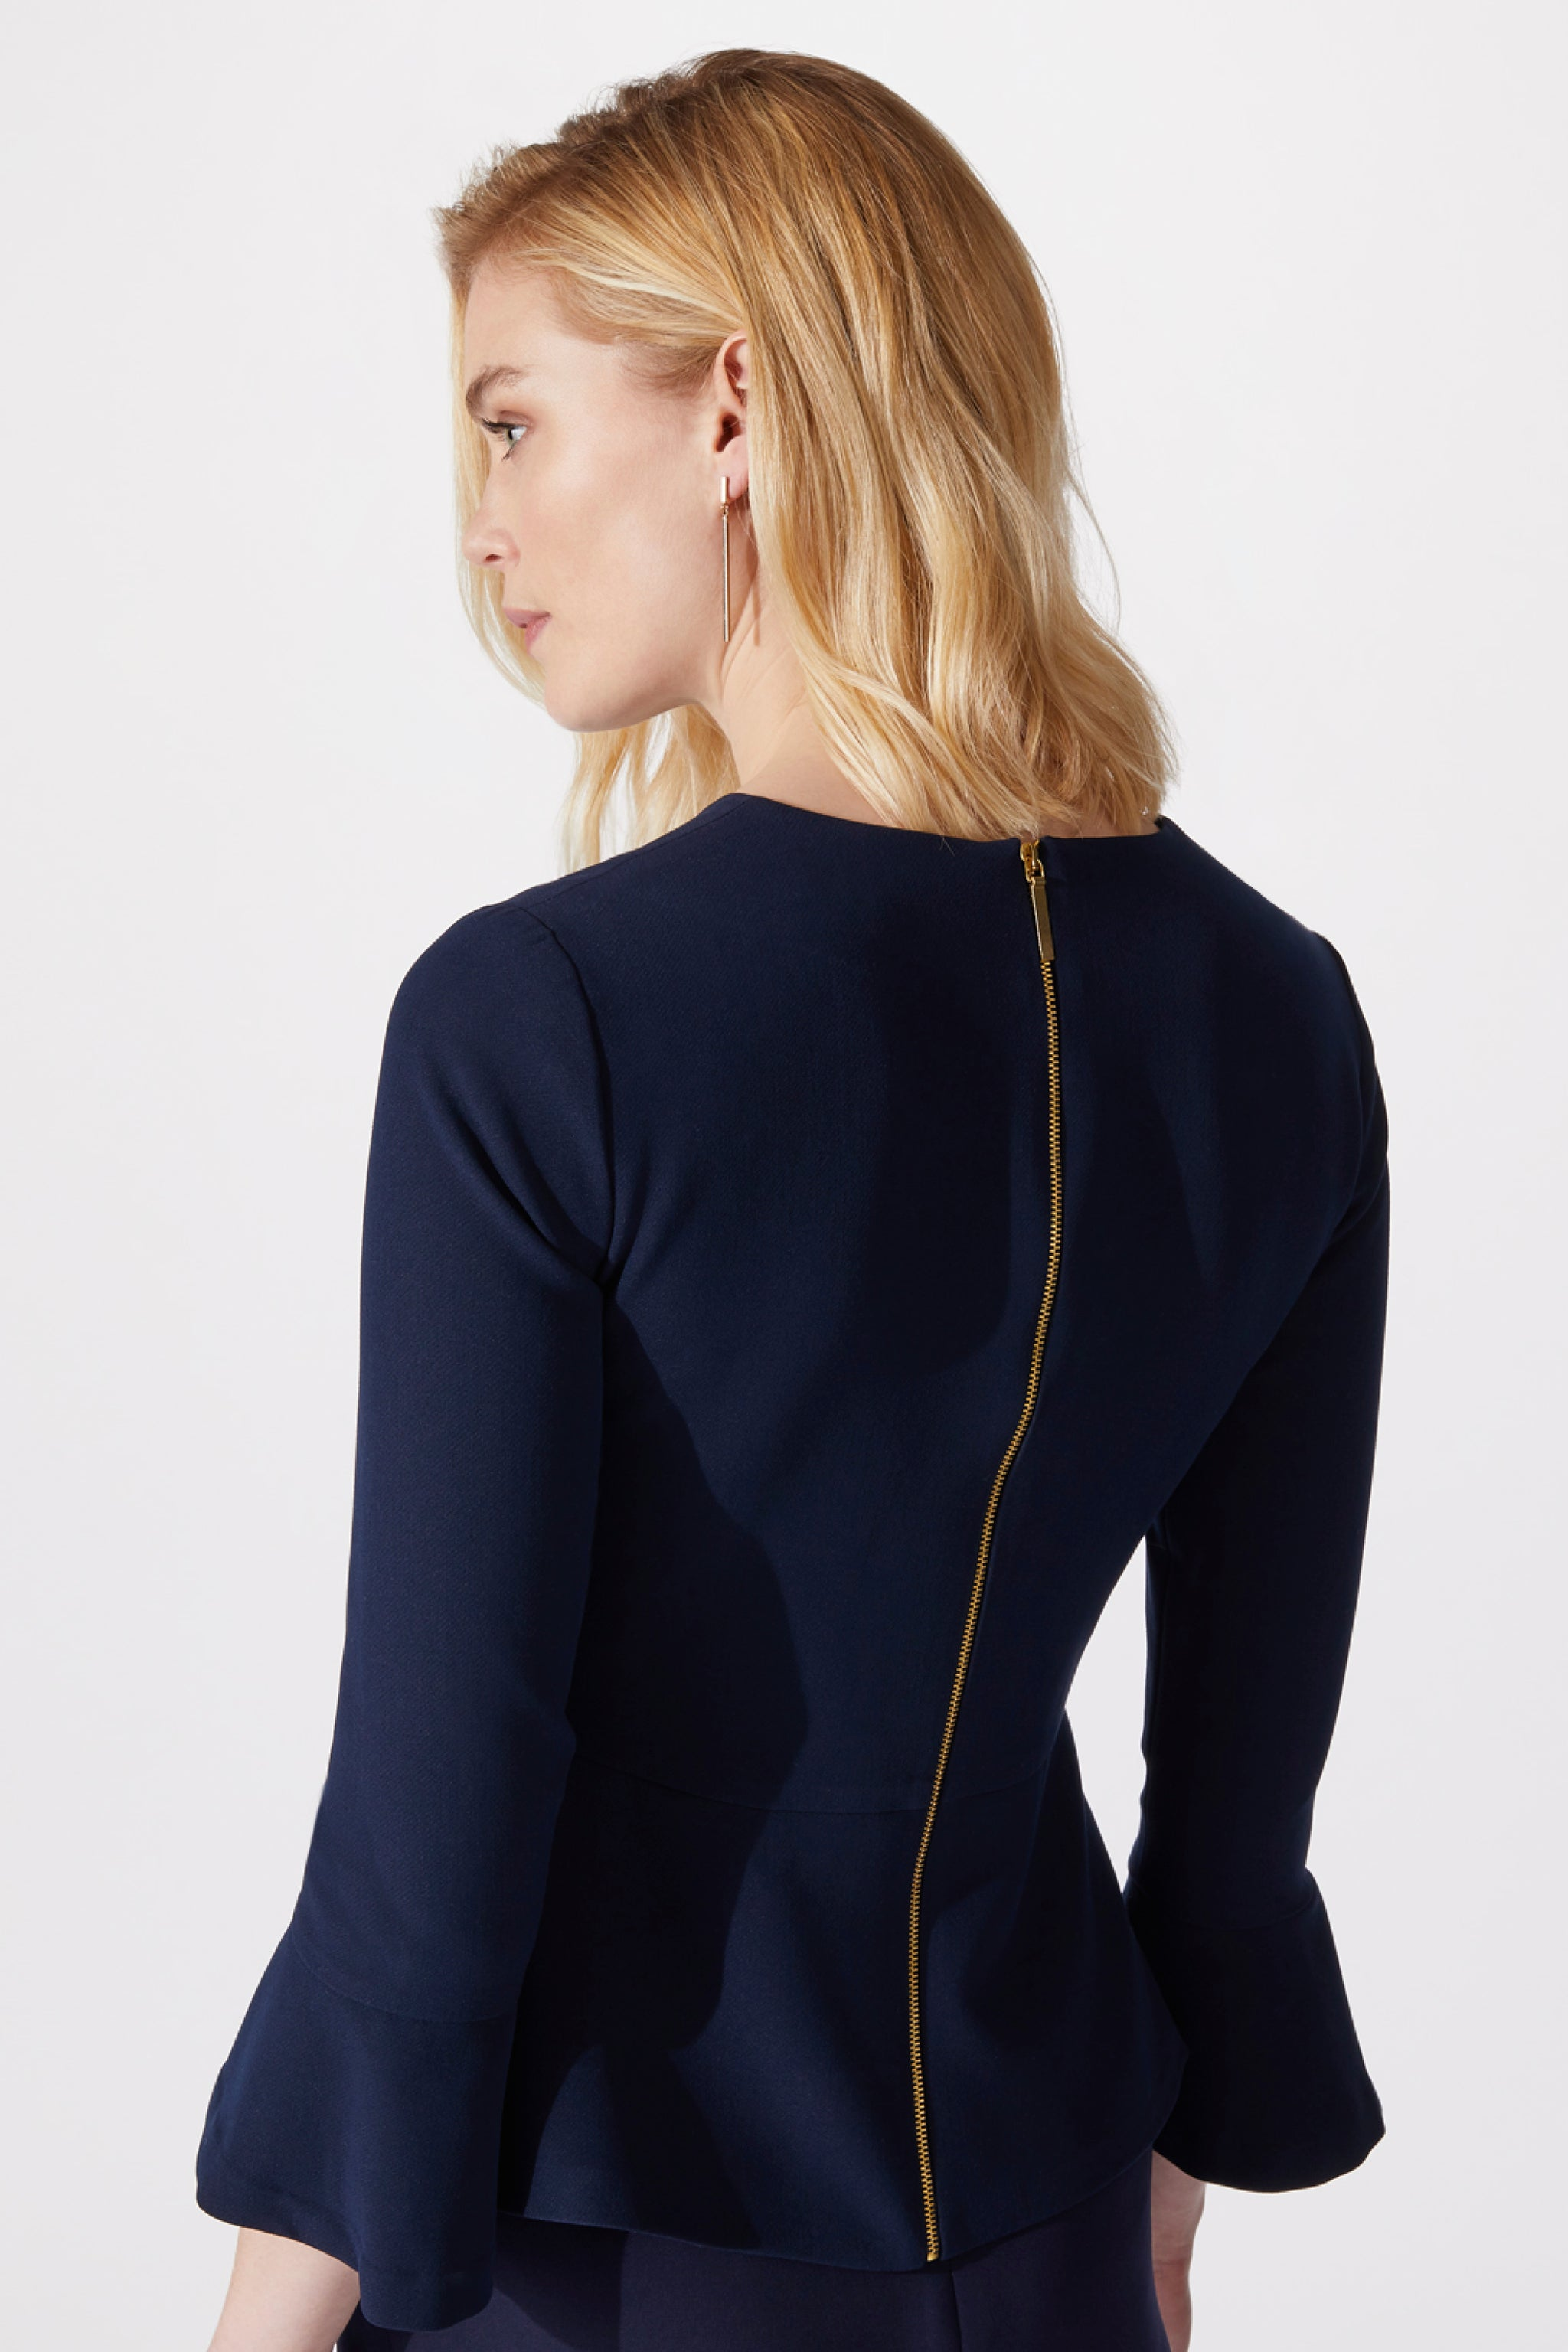 Chartwell Bright Navy Top